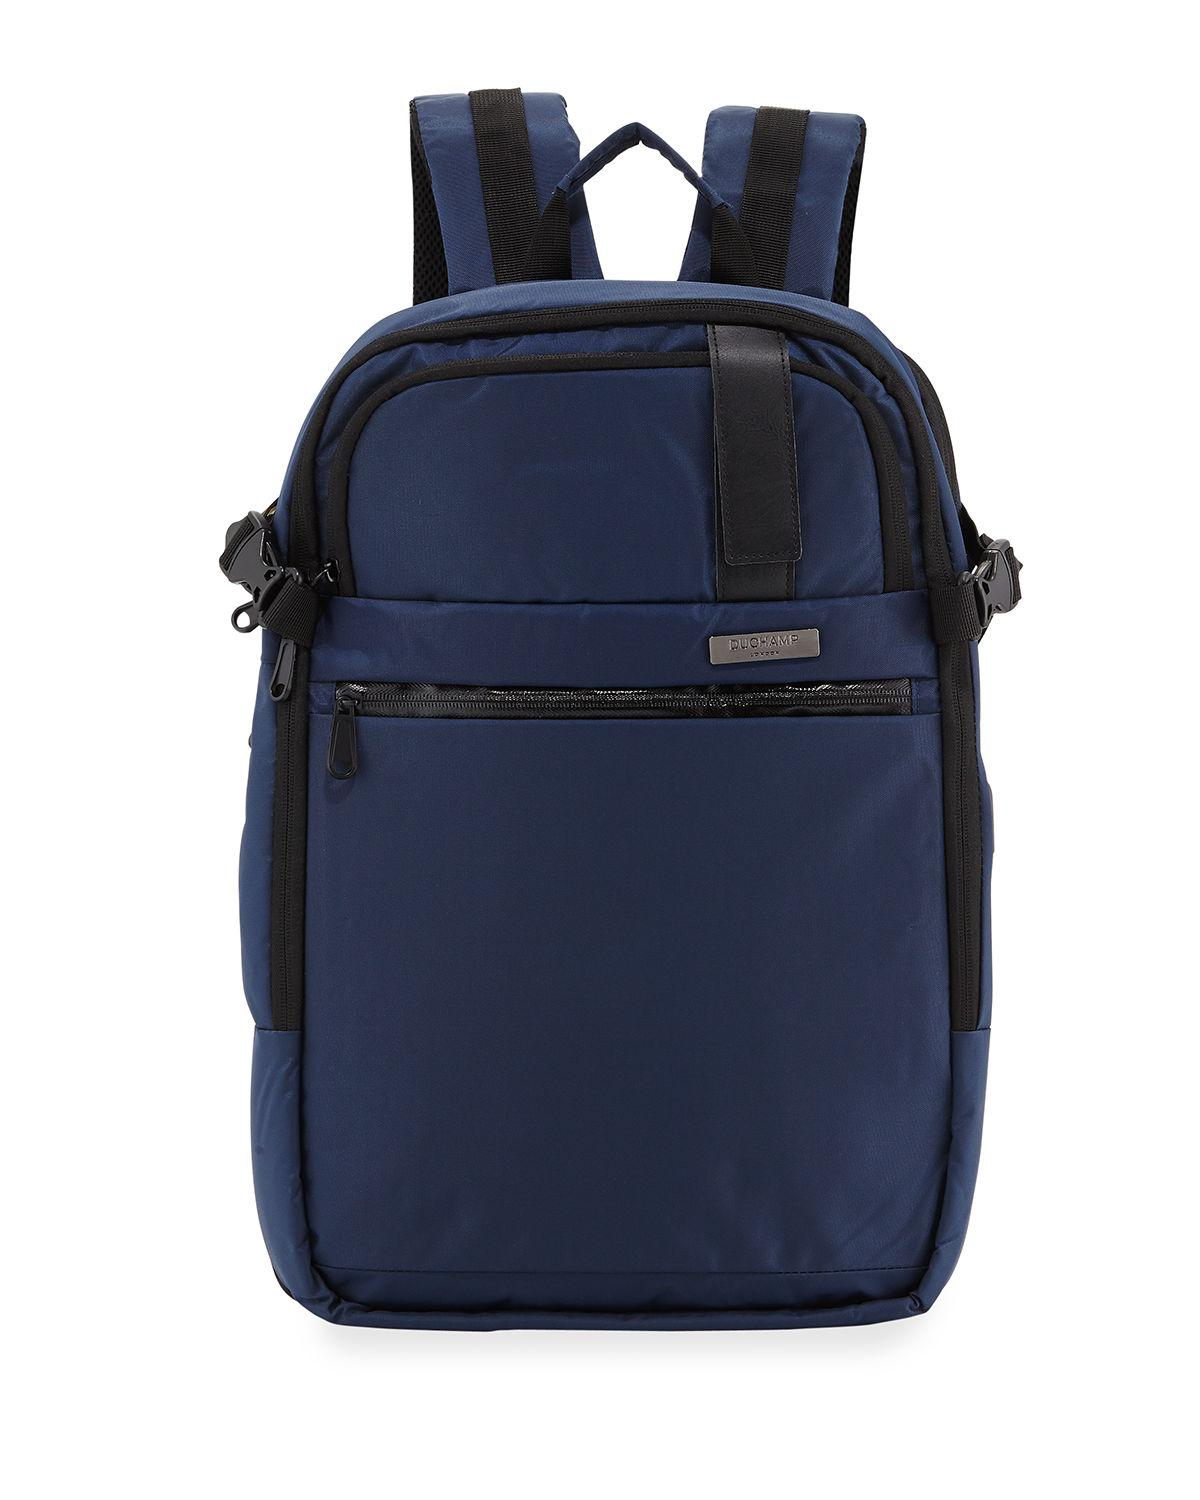 e53abbffb2 Duchamp - Black Men s Getaway Expandable Carry-on Backpack Suitcase for Men  - Lyst. View fullscreen